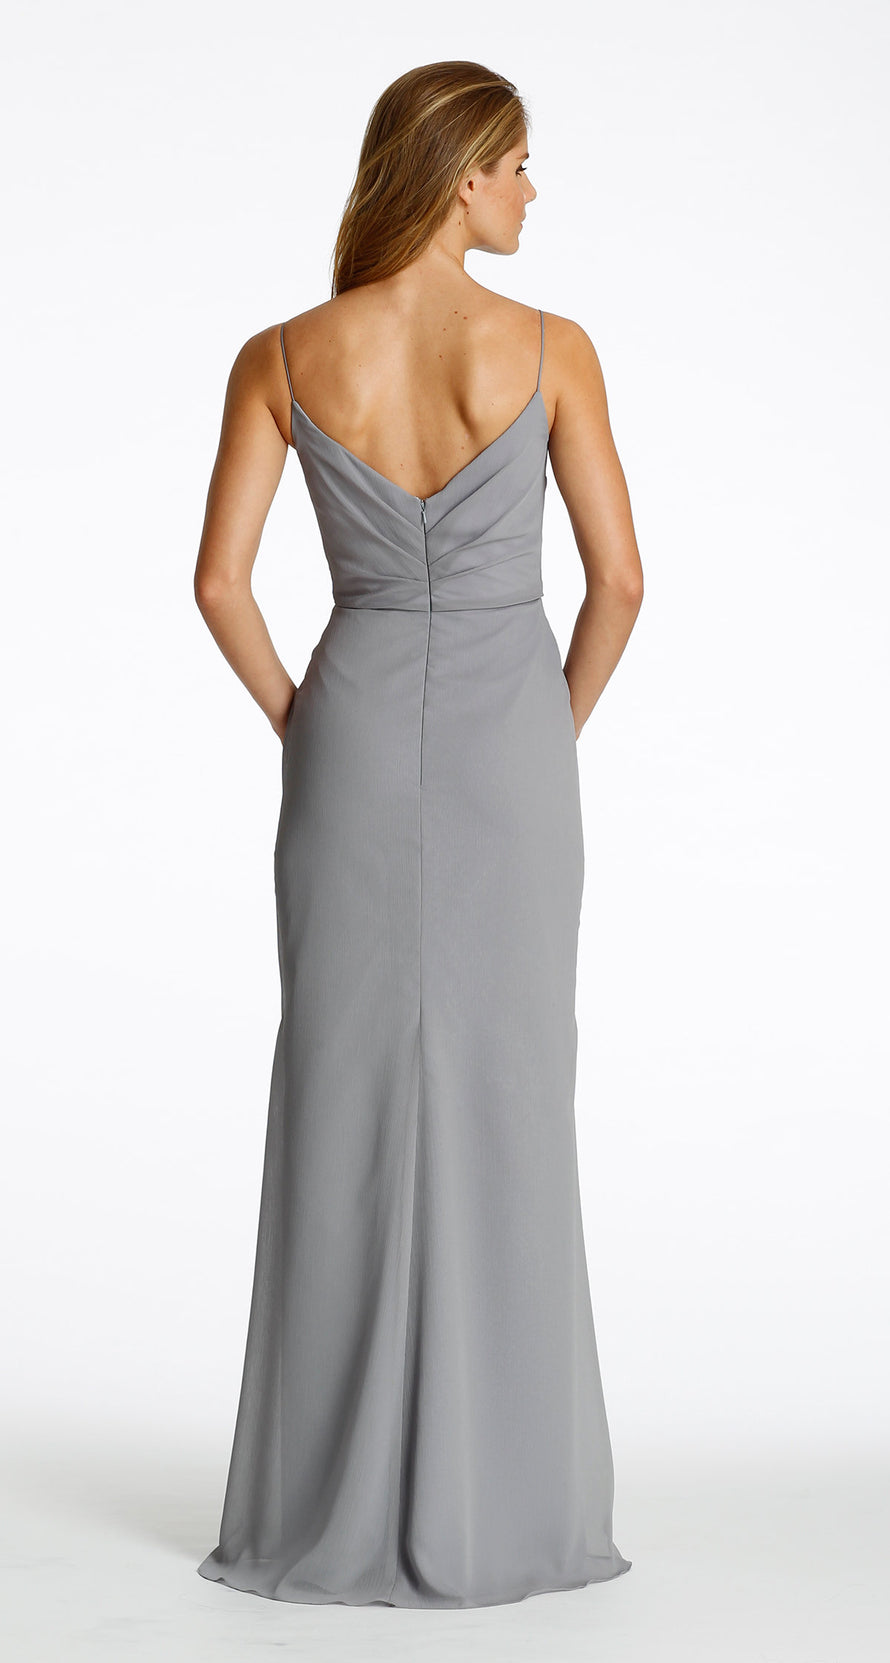 Hayley Paige Occasions Long Bridesmaid Dress - 5603 back